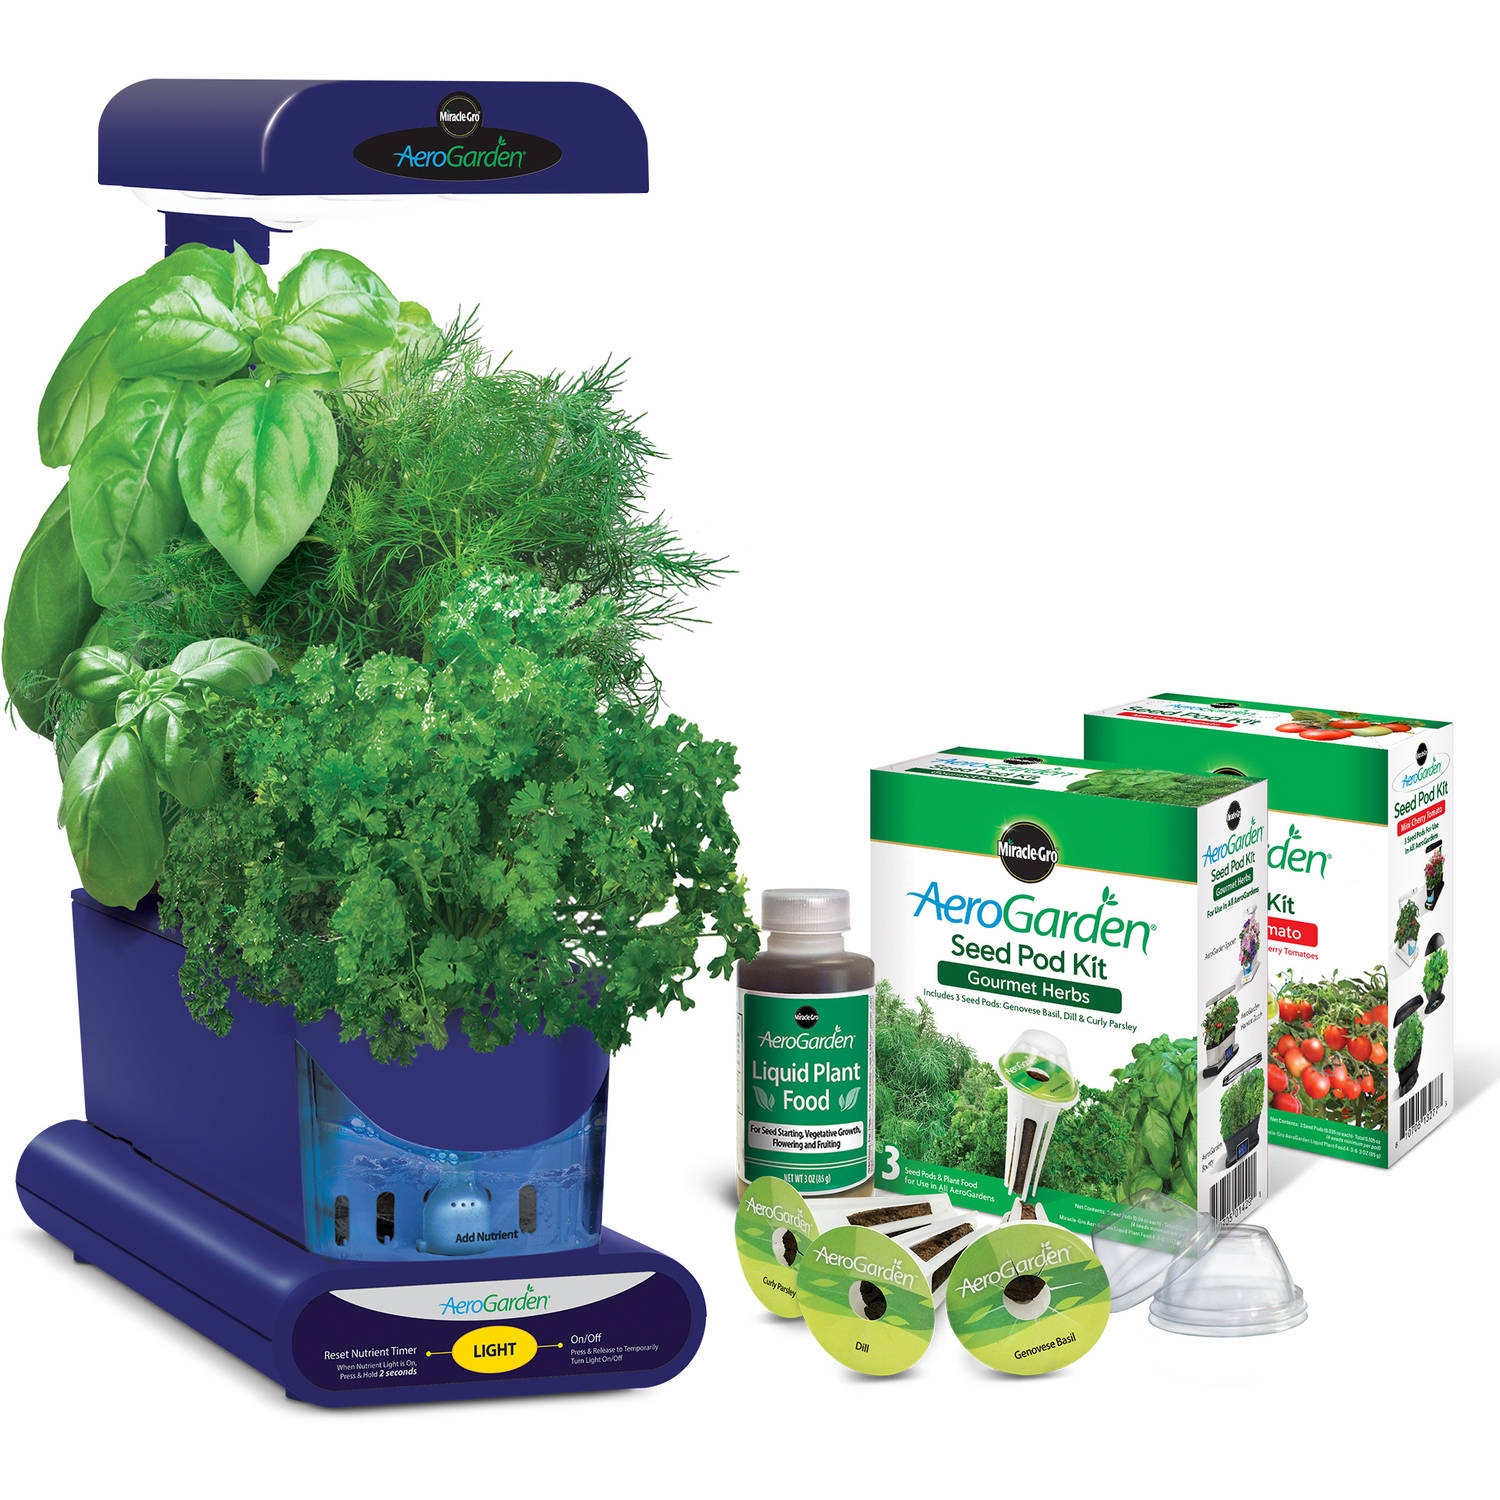 Miracle-Gro AeroGarden Sprout Blue with Gourmet Herbs Seed Pod Kit and Bonus Mighty Mini Cherry Tomato Seed Pod Kit